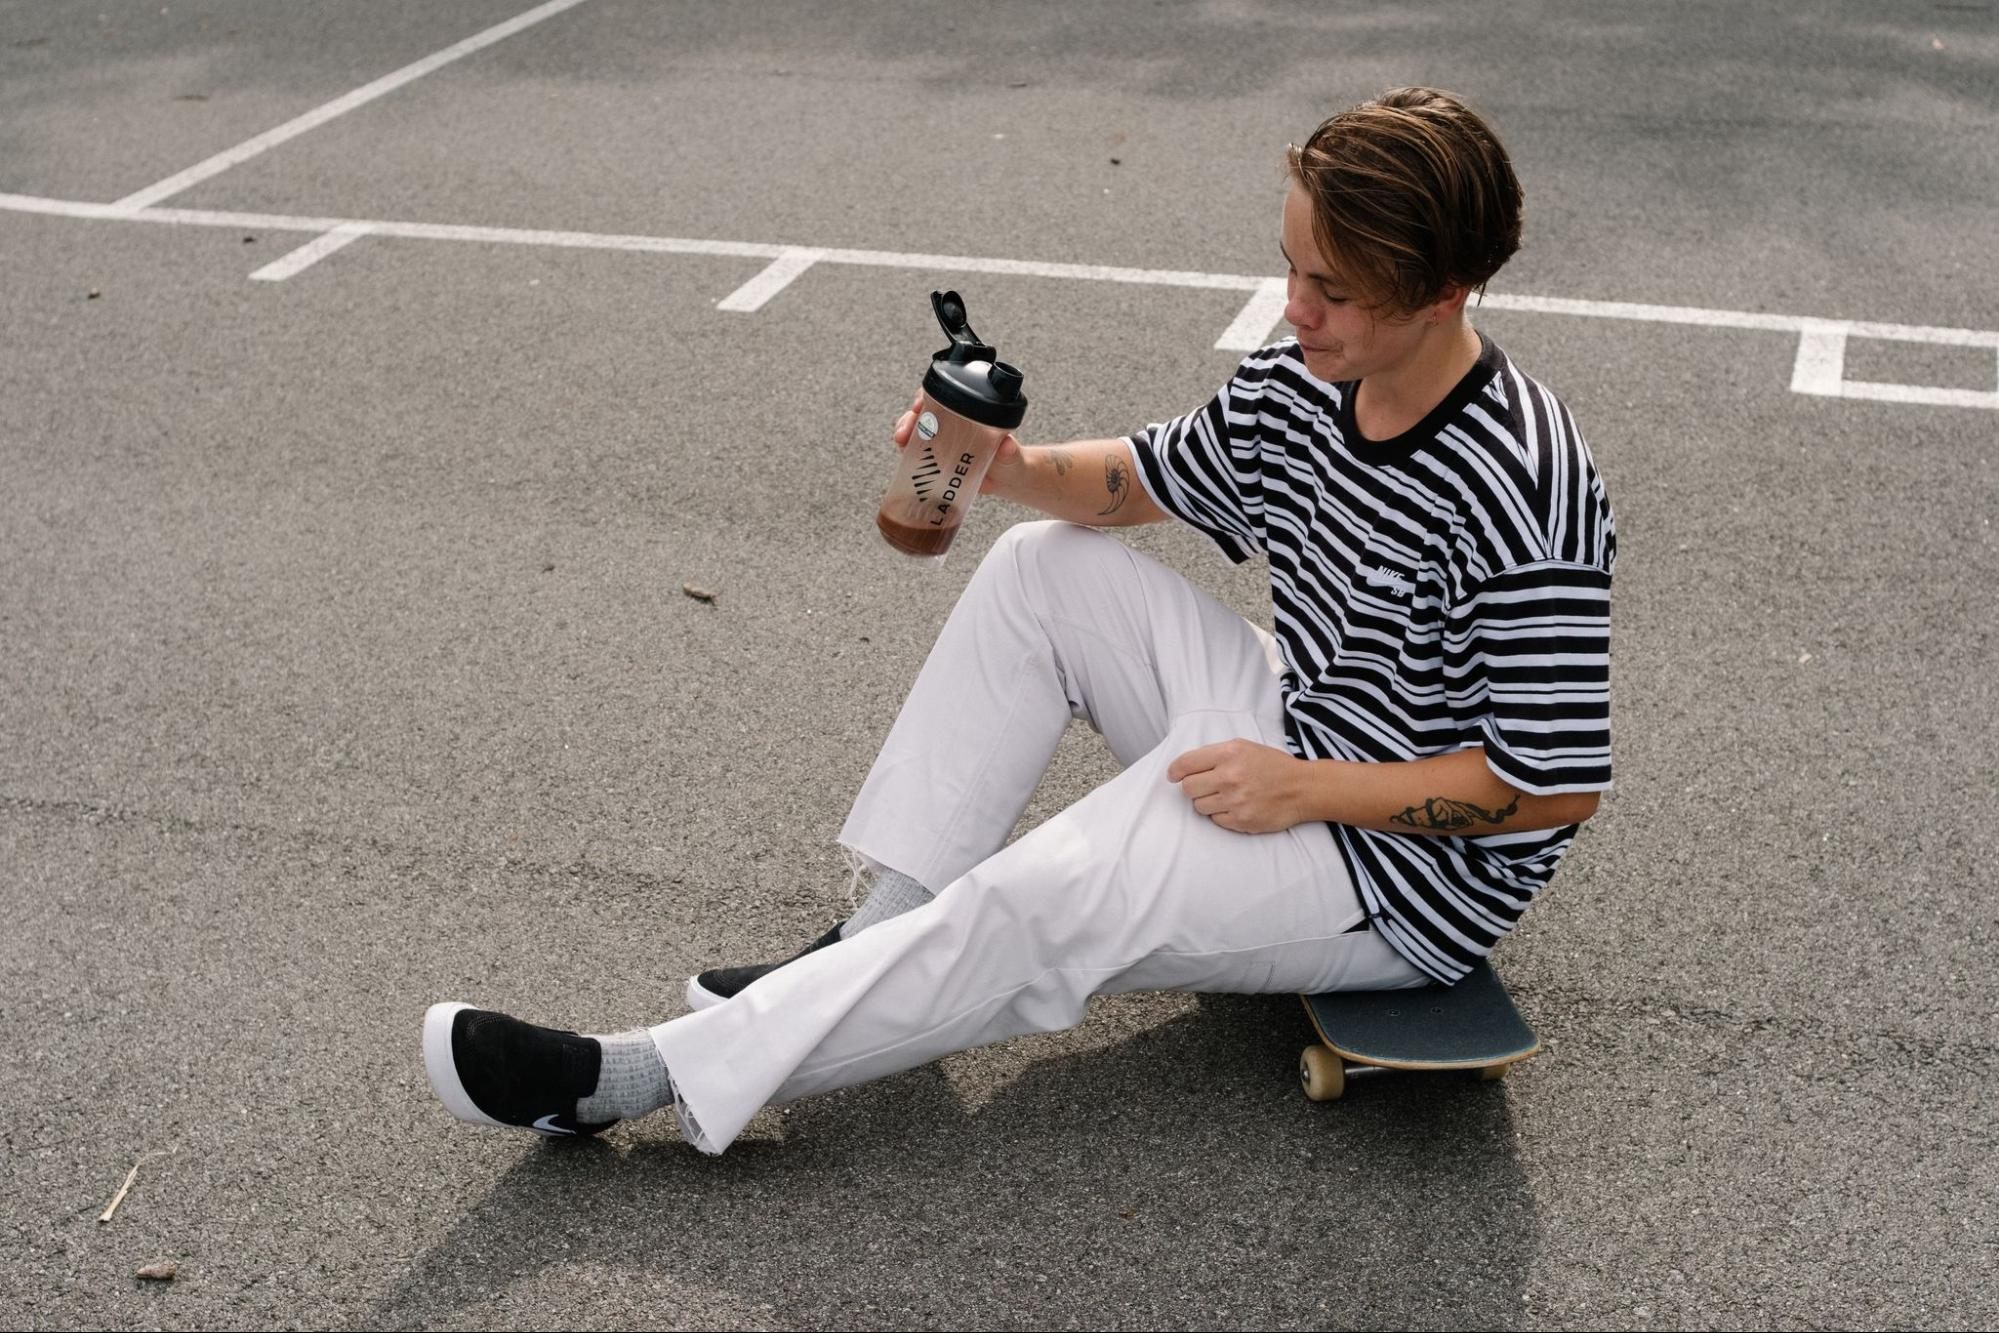 A model sits on a skateboard while drinking Ladder supplements.